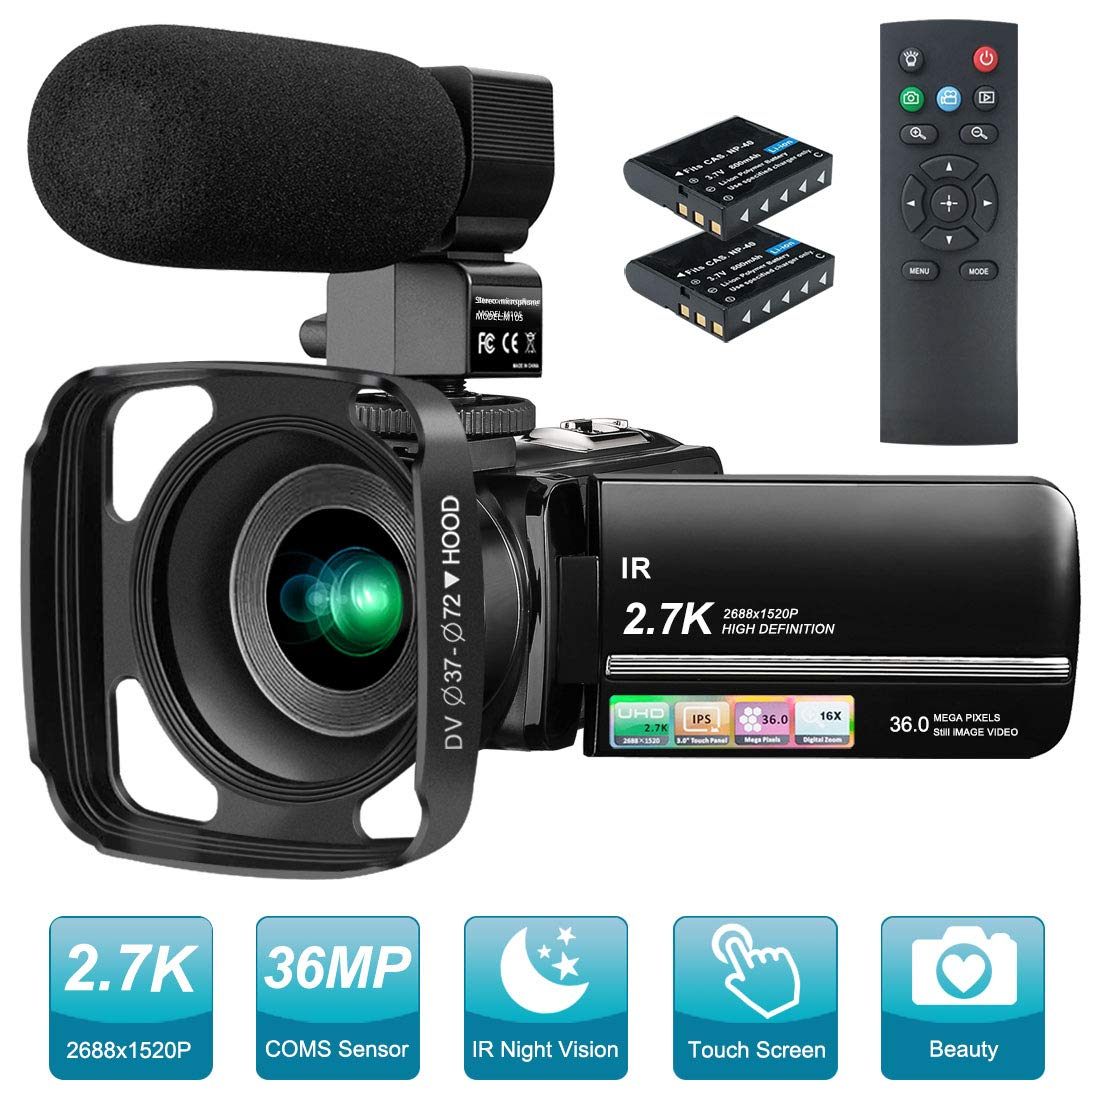 Video Camera 2.7K Camcorder Night Vision with External Microphone Touch Screen Video Recorder for YouTube Camera 36MP Time-Lapse,Slow Motion,Remote Control